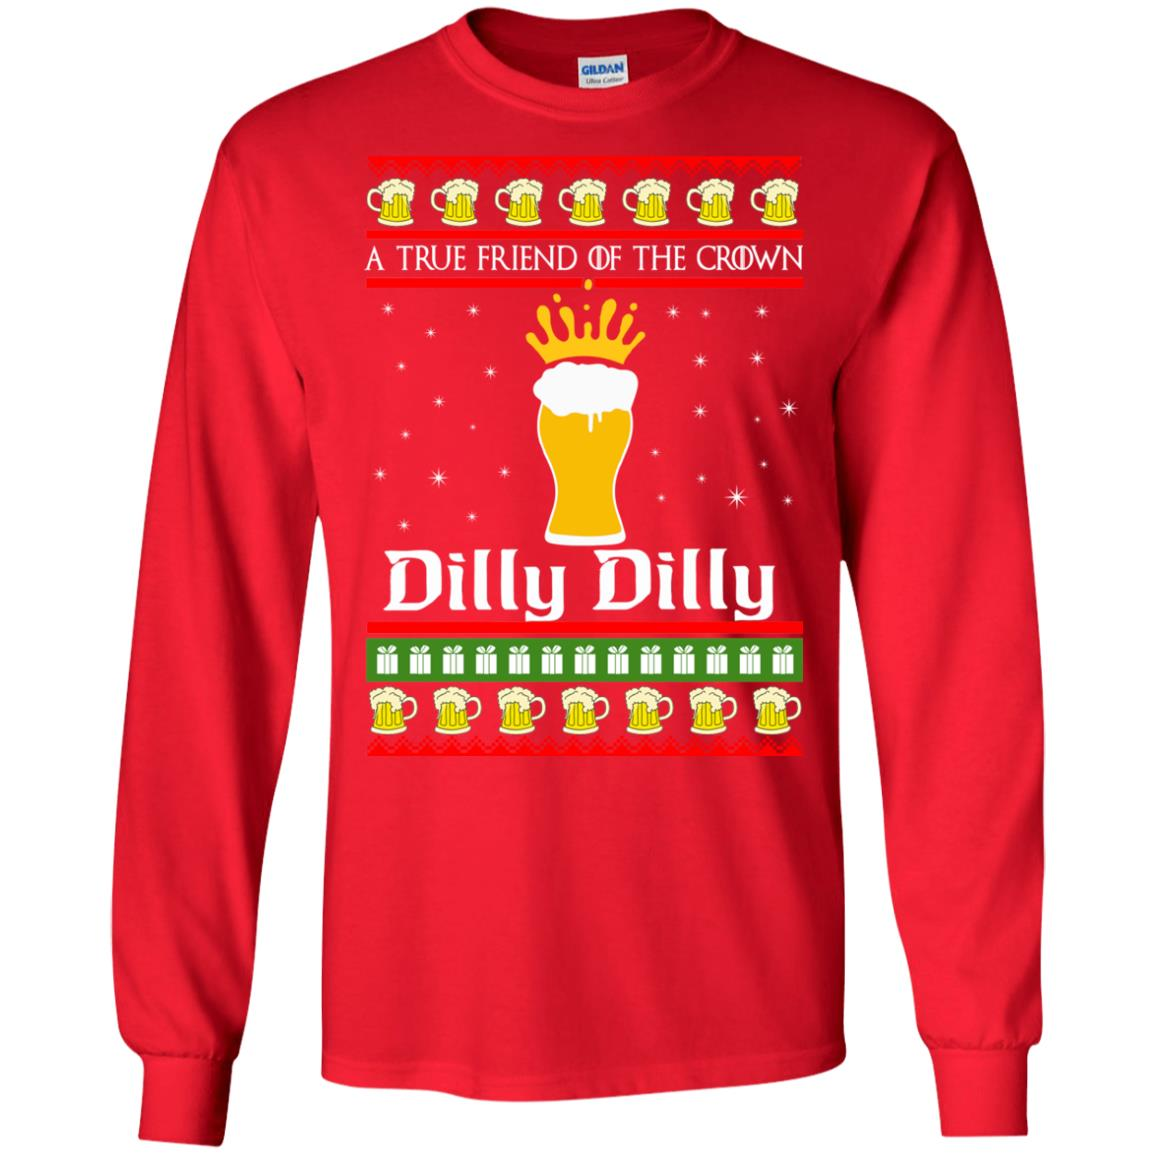 image 6320 - A True Friend Of The Crown Dilly Dilly Christmas Sweater, Hoodie